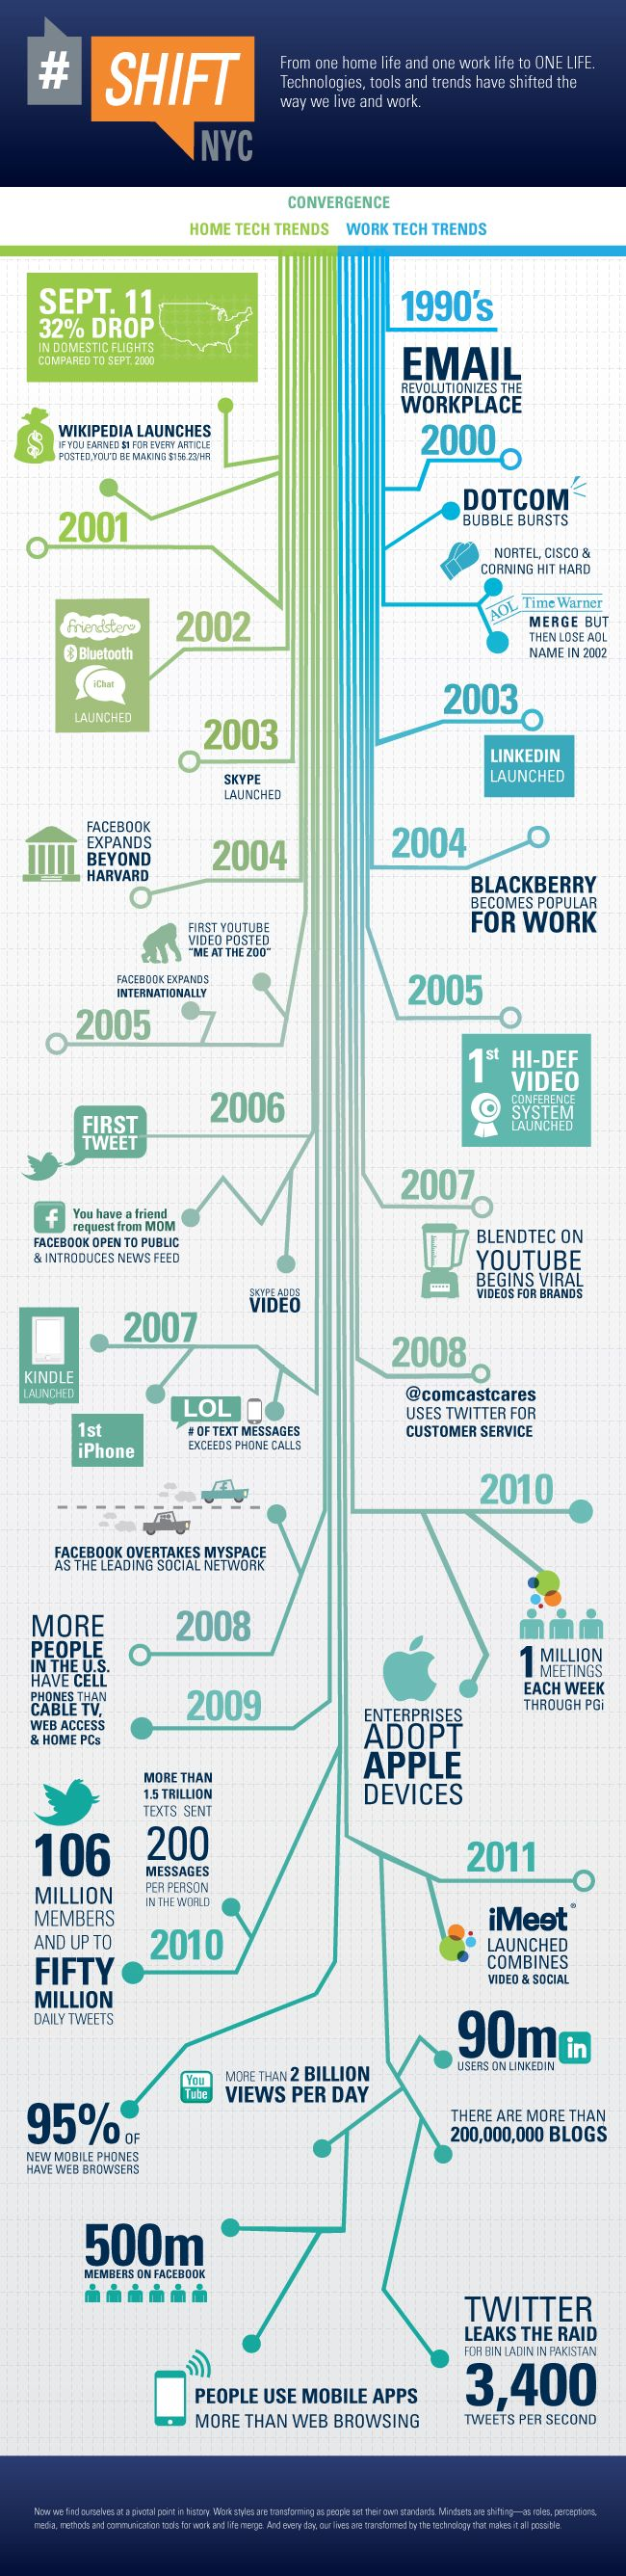 how the adoption of technology has changed in the past two decades